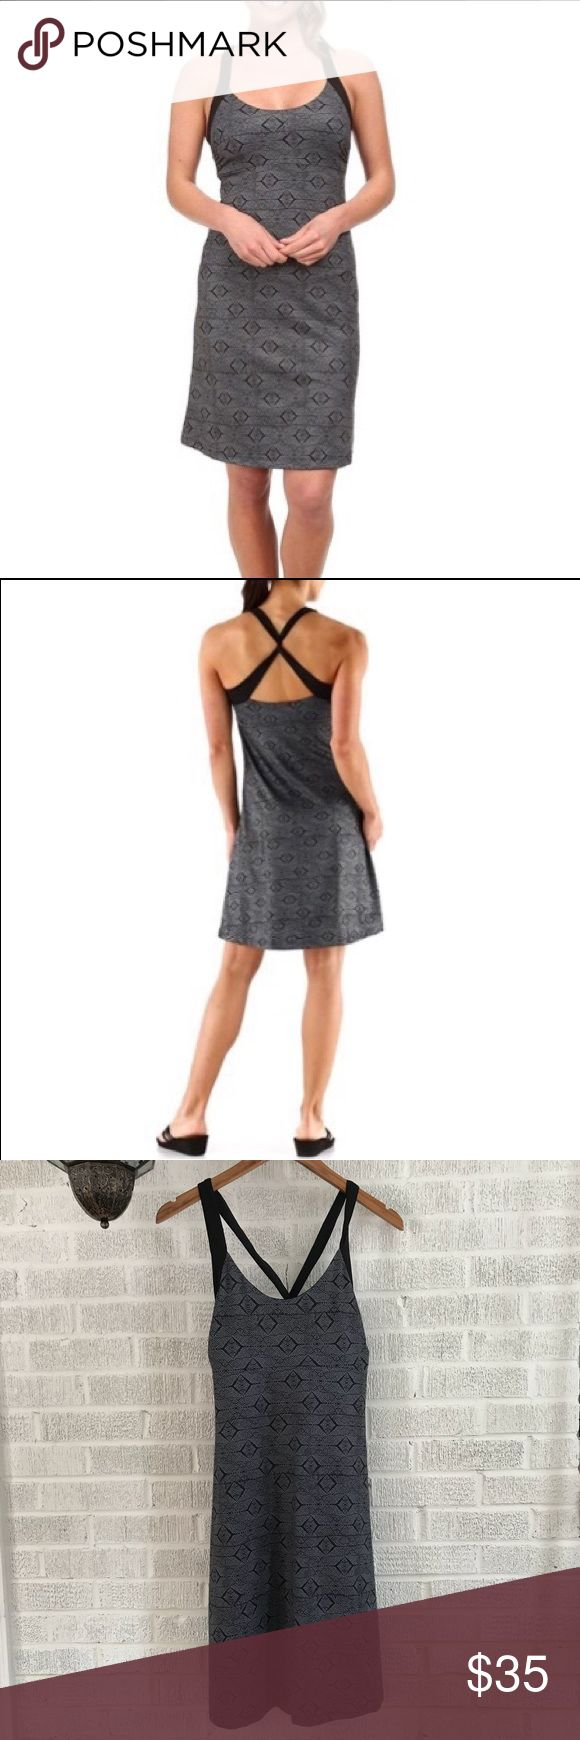 Patagonia Morning Glory Dress EUC - selling a Patagonia Morning Glory Dress in the Diamante Graphic (Black). This dress is fun, flirty, and feminine, while not compromising style or comfort. It's a flattering dress that can easily be dressed up or down.   Features: - Soft, stretchy jersey-knit fabric - Wicks/dries quickly - Shelf bra for support - Underbust seam + side gathers add contour, shape, and flattering fit - Wide cross-back straps with a twist - Above-the-knee length  Item comes…